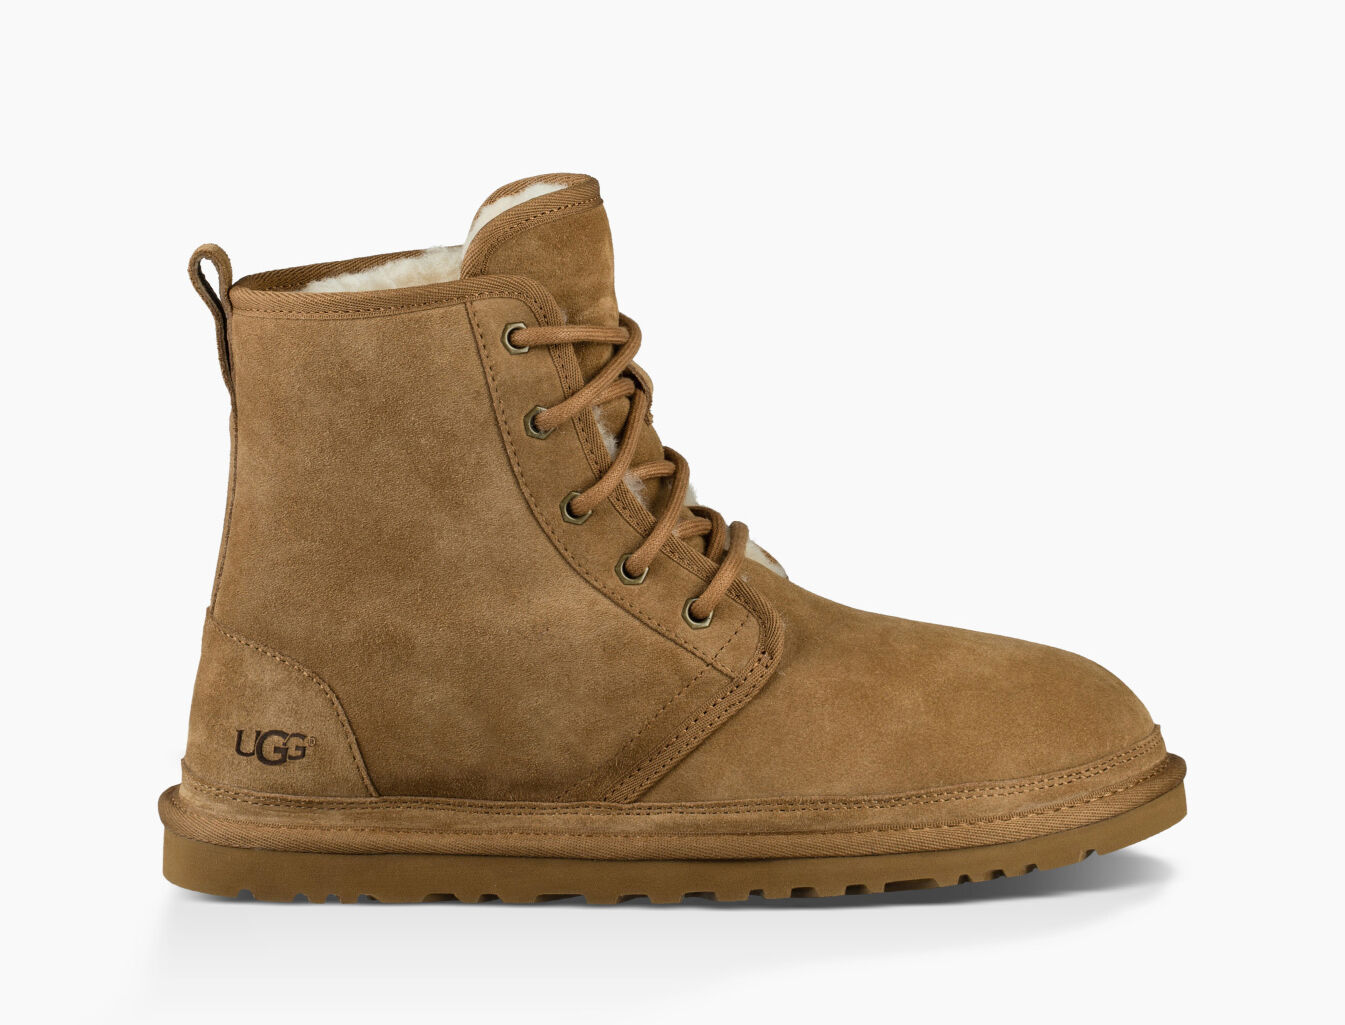 ugg shoe men nz